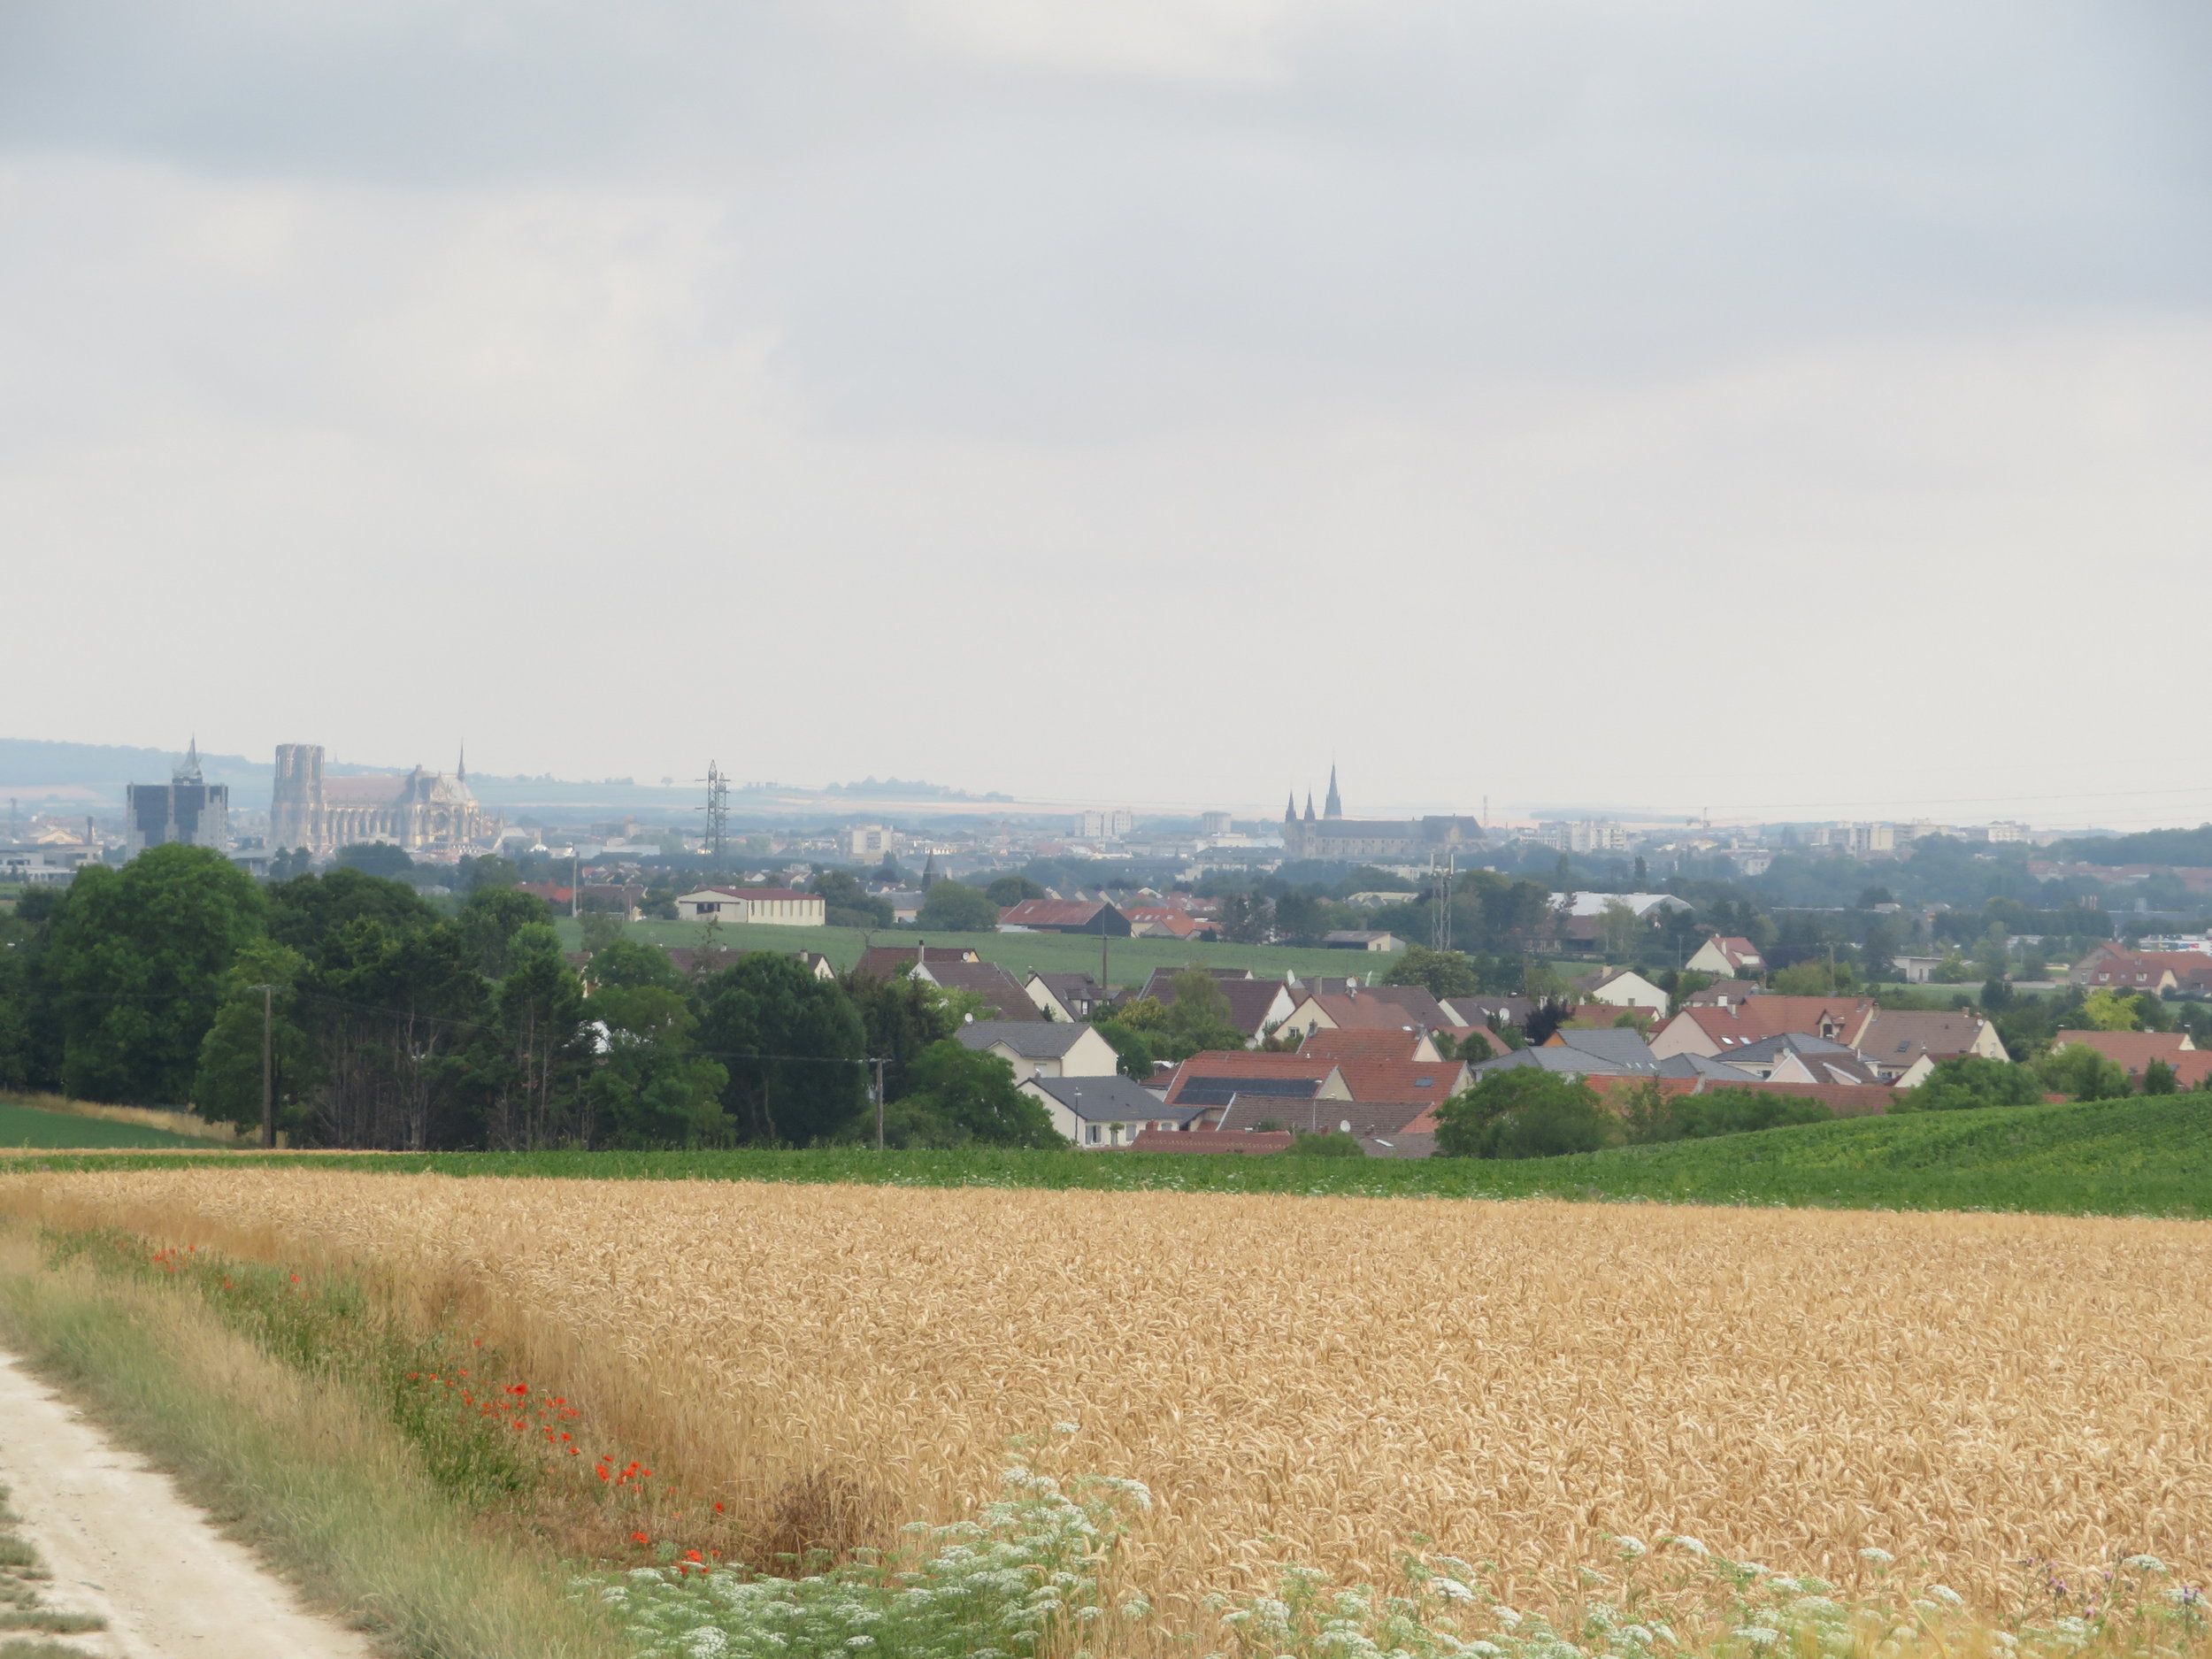 The skyline of Reims in the distance